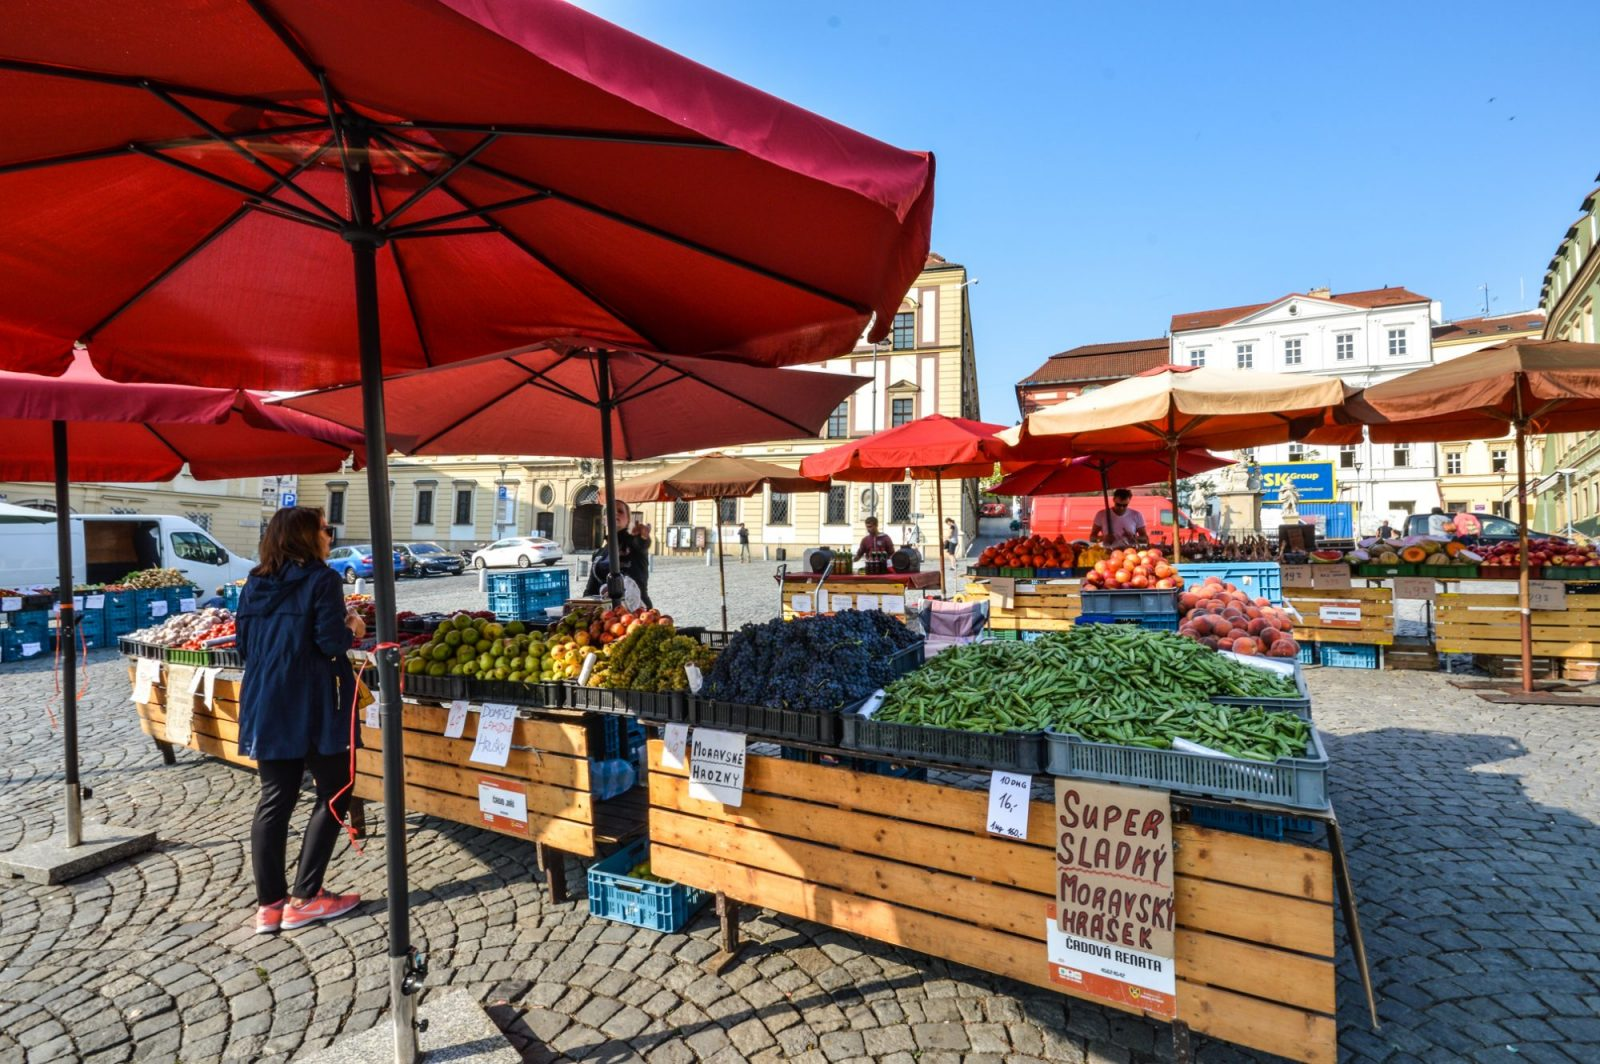 Stalls at the Cabbage Market in Brno